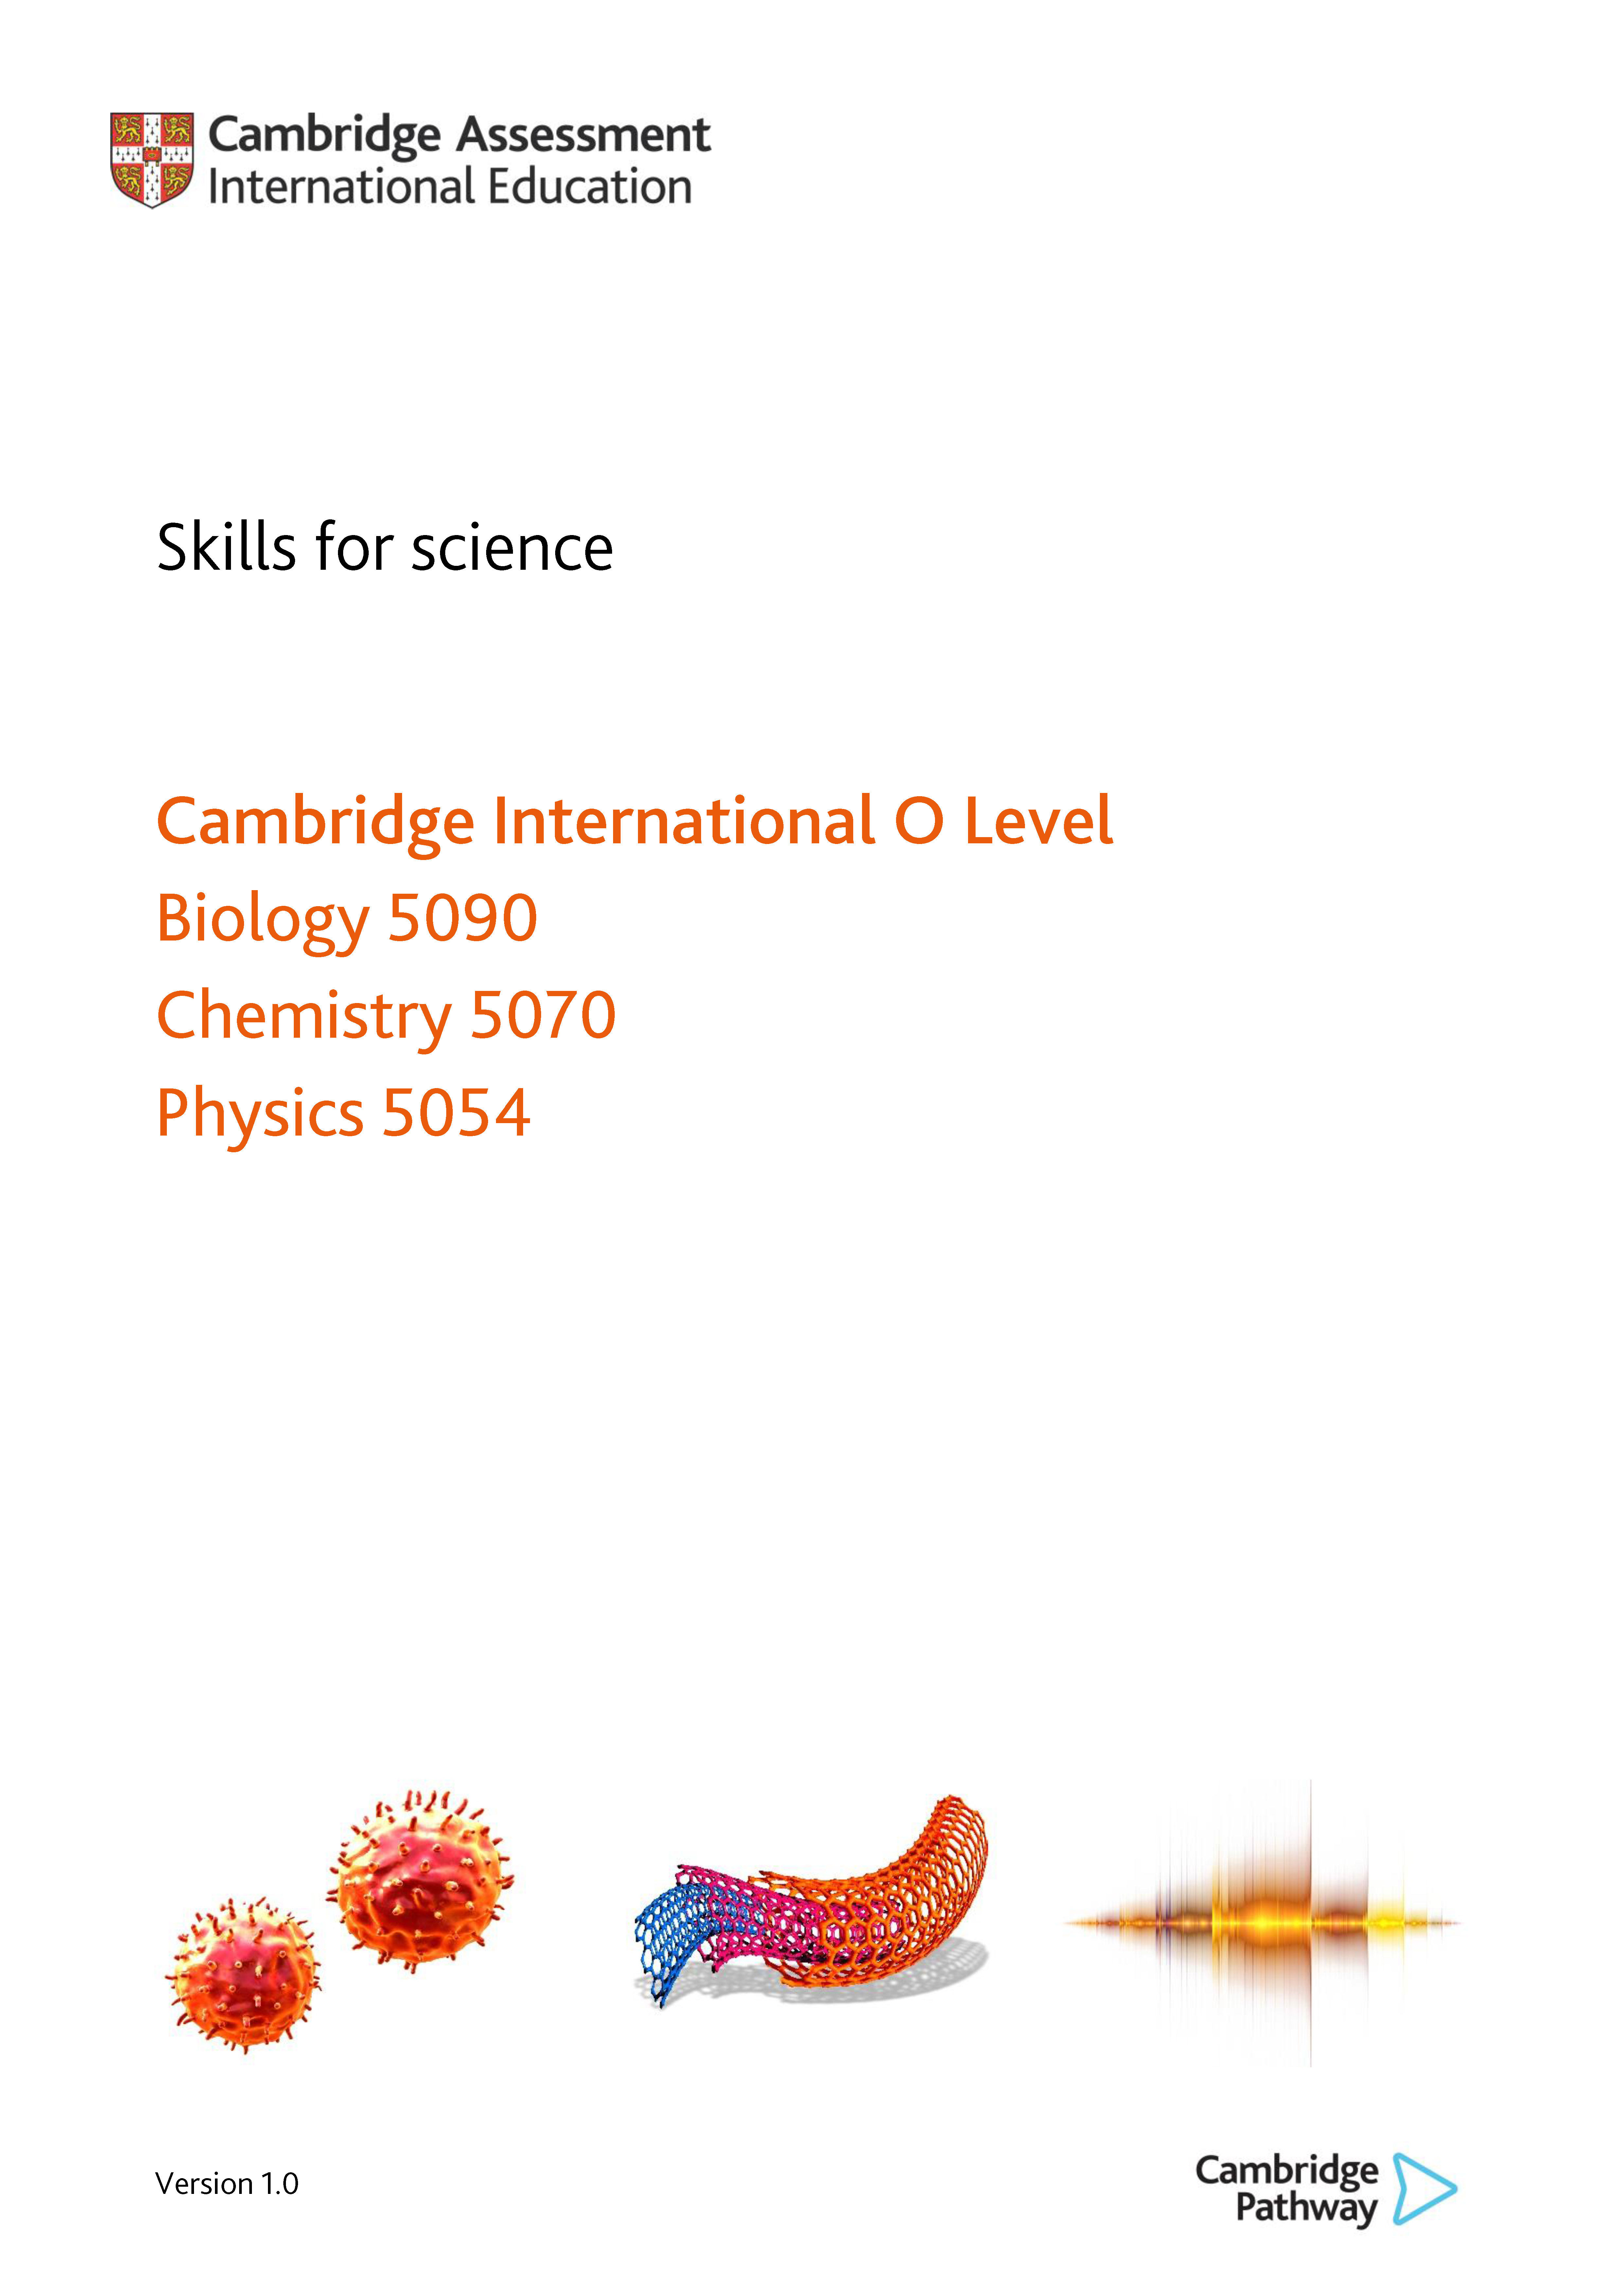 Skills for science - Evaluating